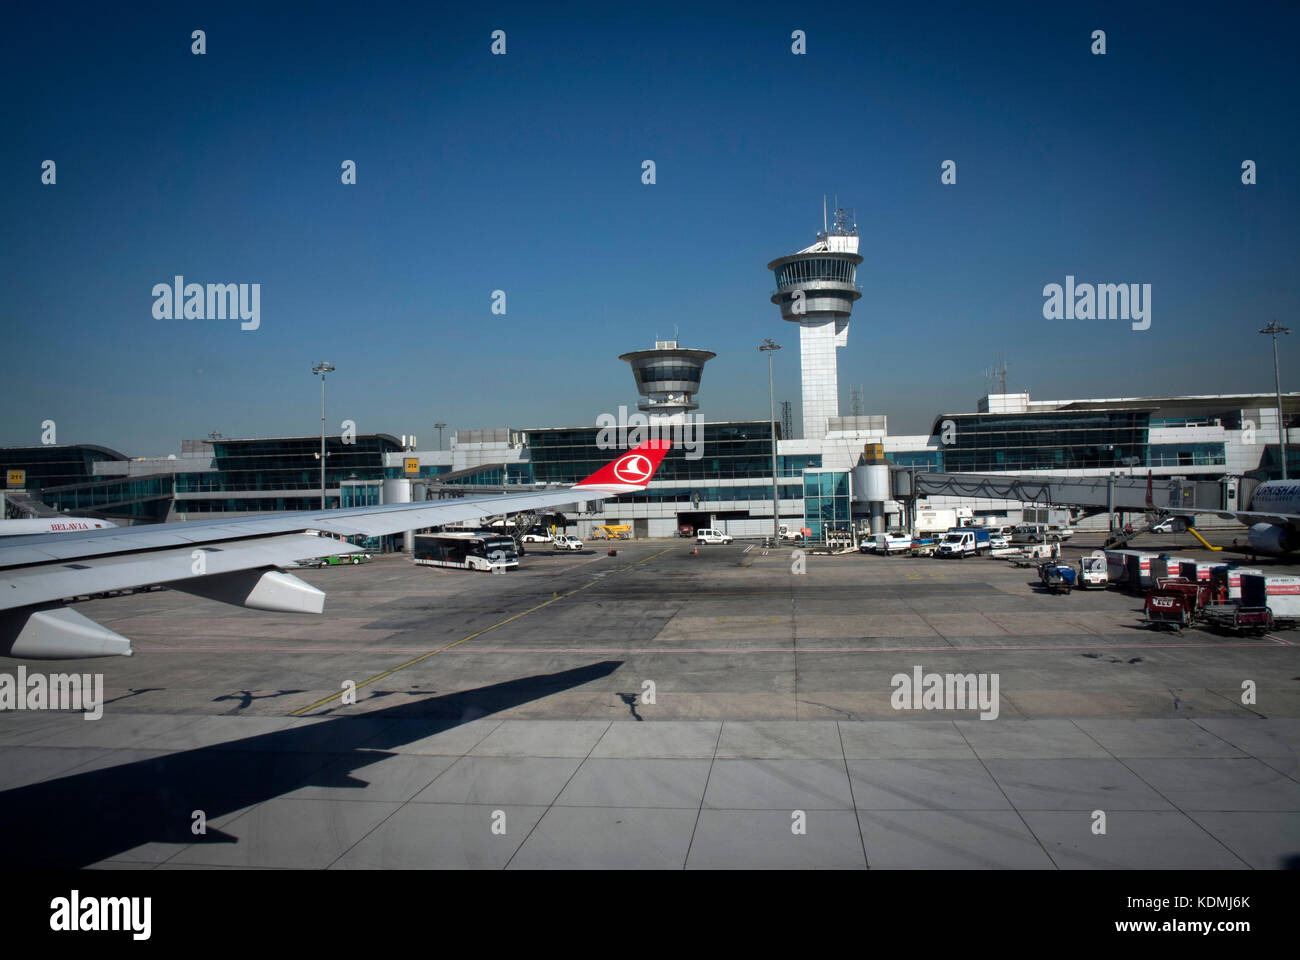 Istanbul Airport, Turkey - Stock Image